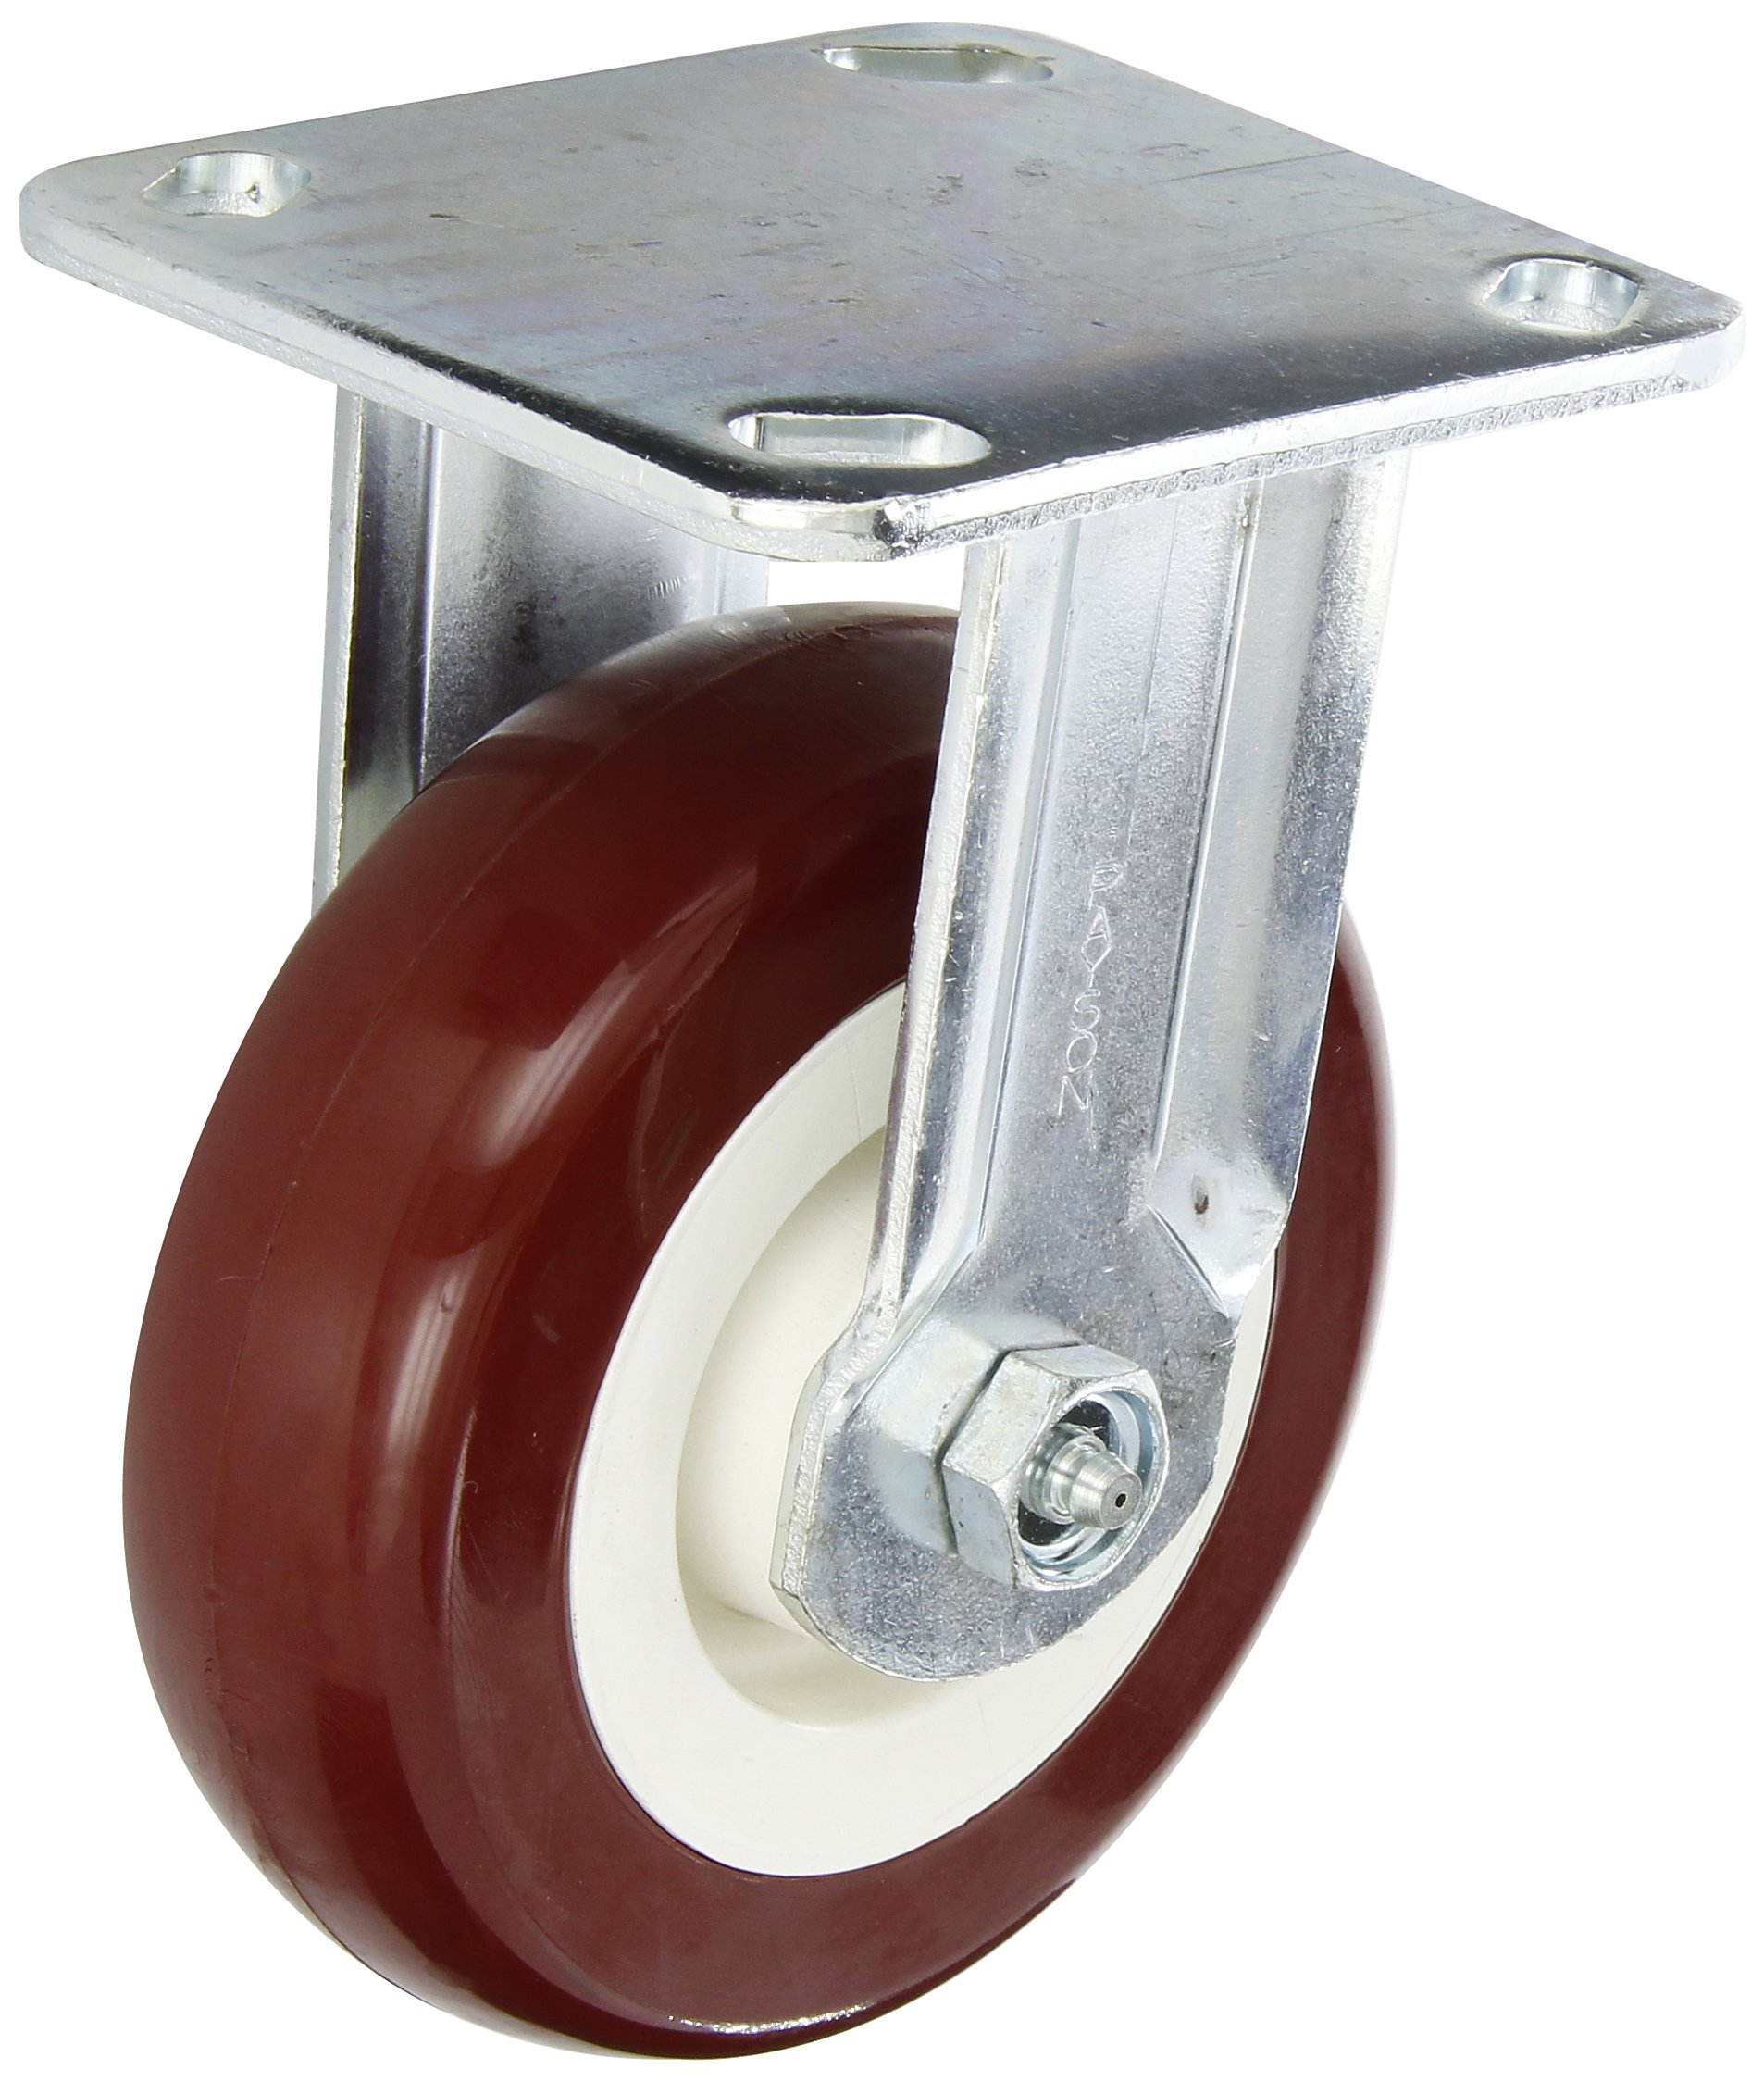 Justrite 16043 4 Piece Heavy Duty Caster Set, 5'' Diameter, 2000 lbs Capacity, For Specialty Cabinets